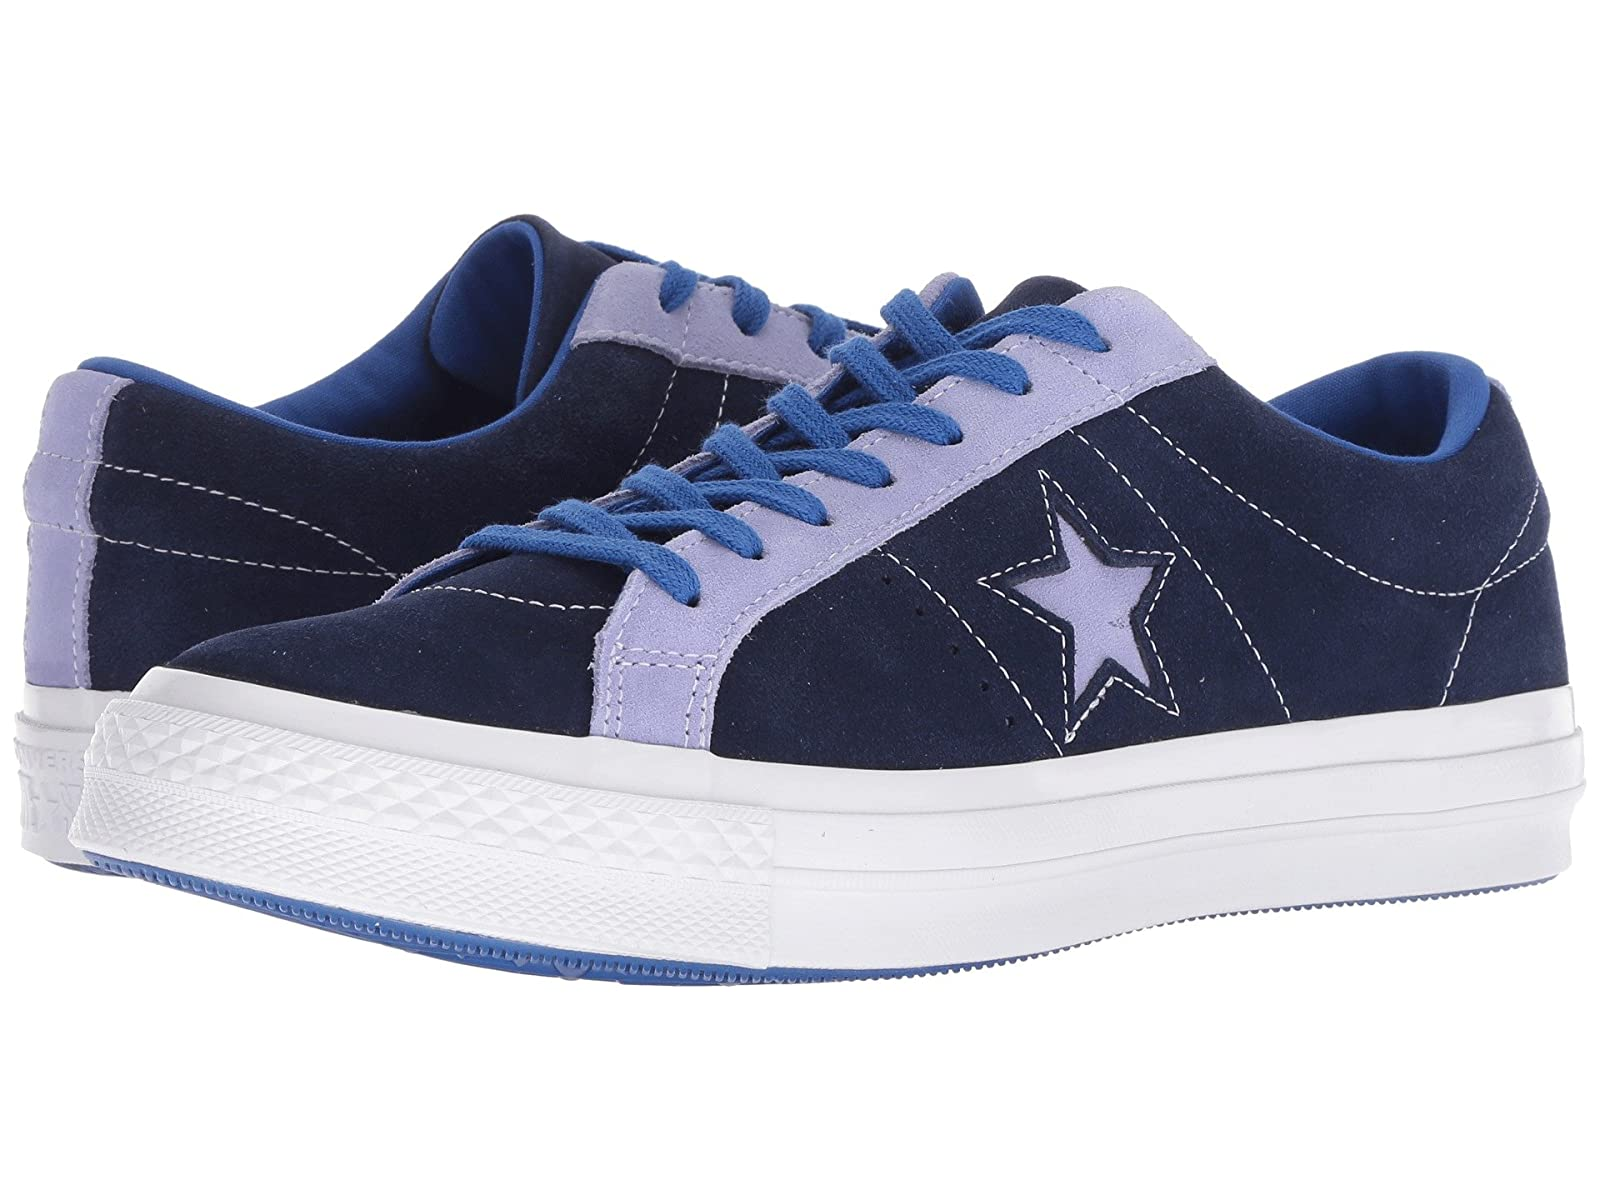 Converse One Star - Carnival OxAtmospheric grades have affordable shoes